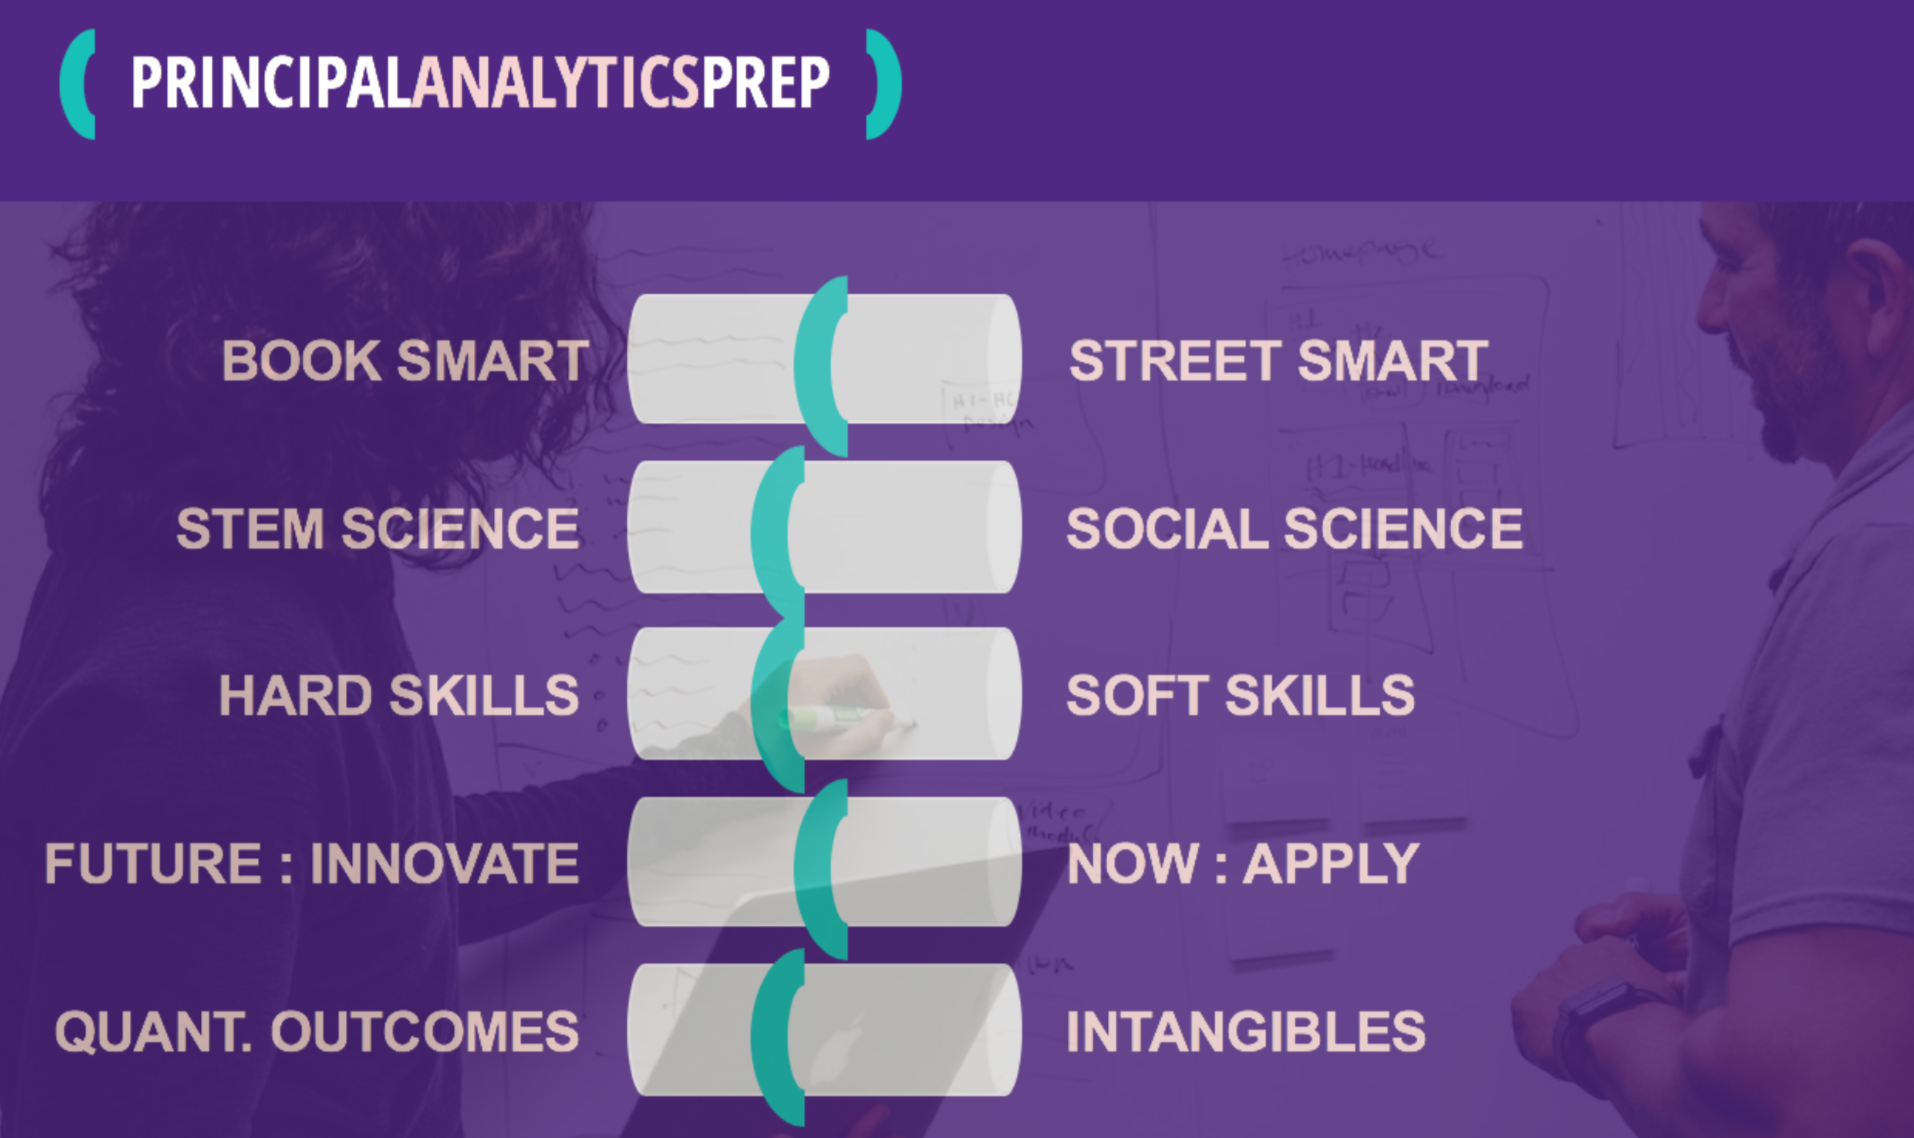 Principal Analytics Prep offers unique data science and analytics training programs for corporations and organizations.